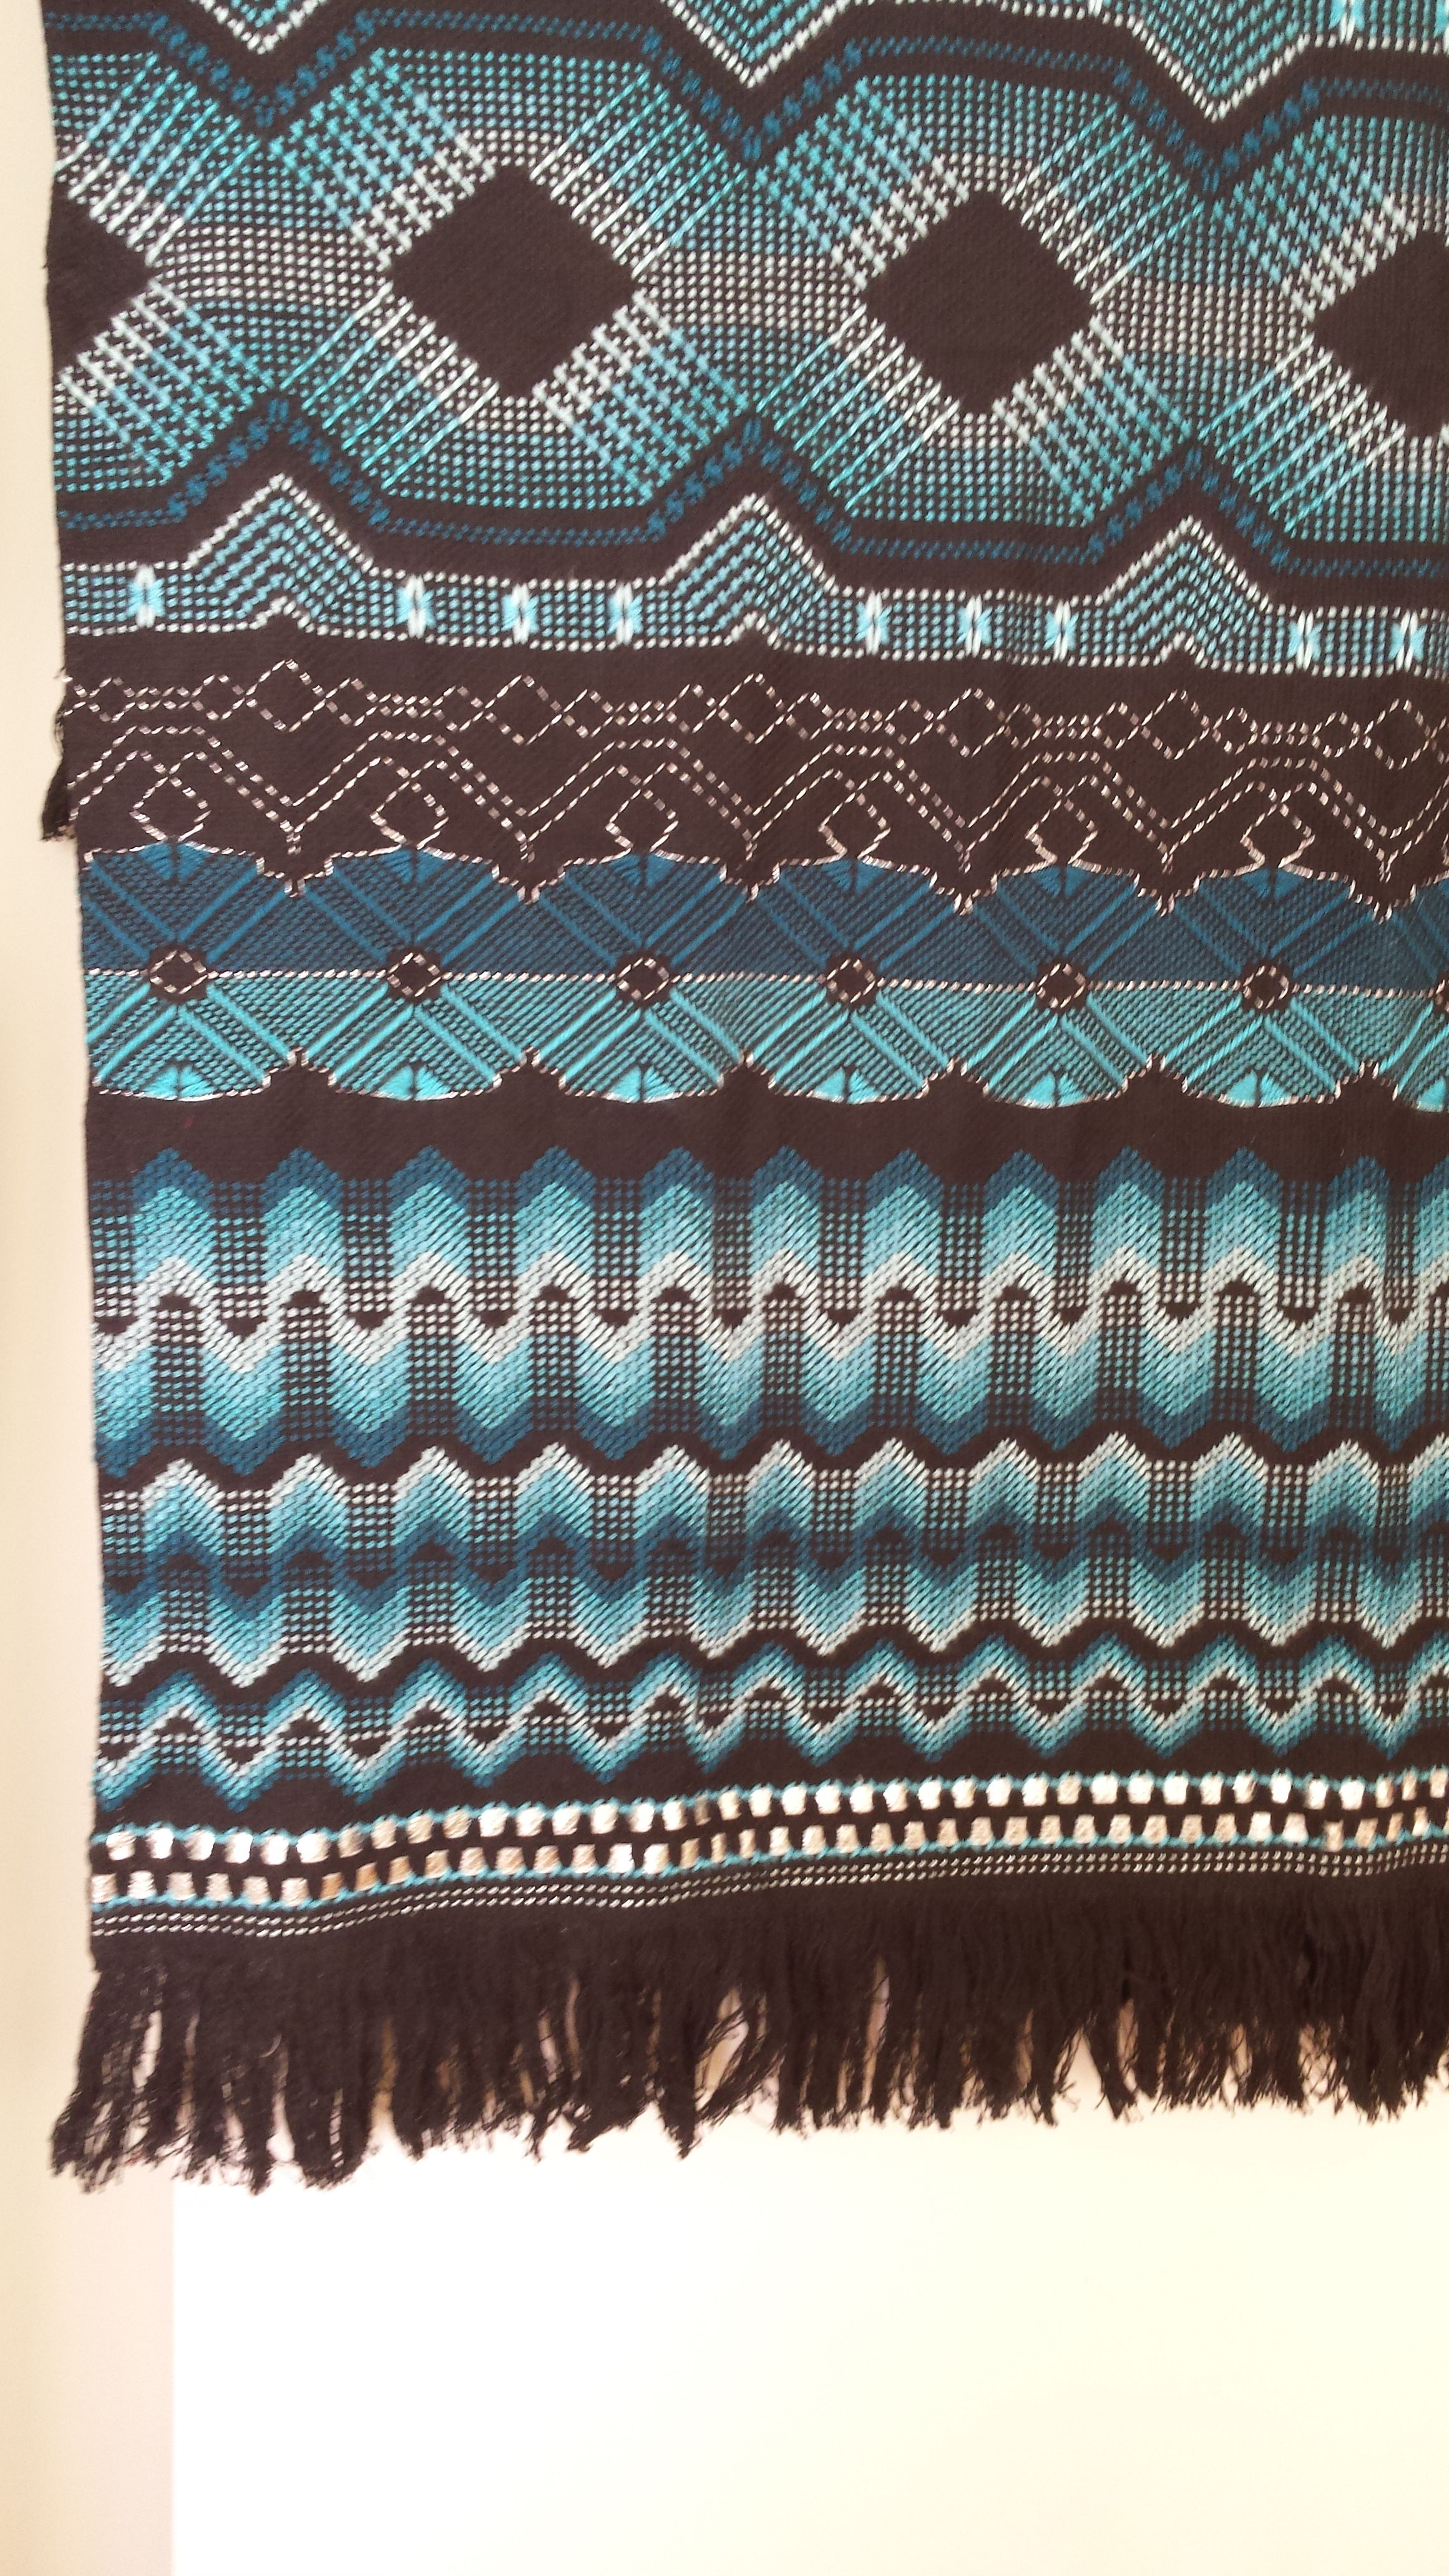 swedish weaving on black cloth withe shades of turquoise and silver ...